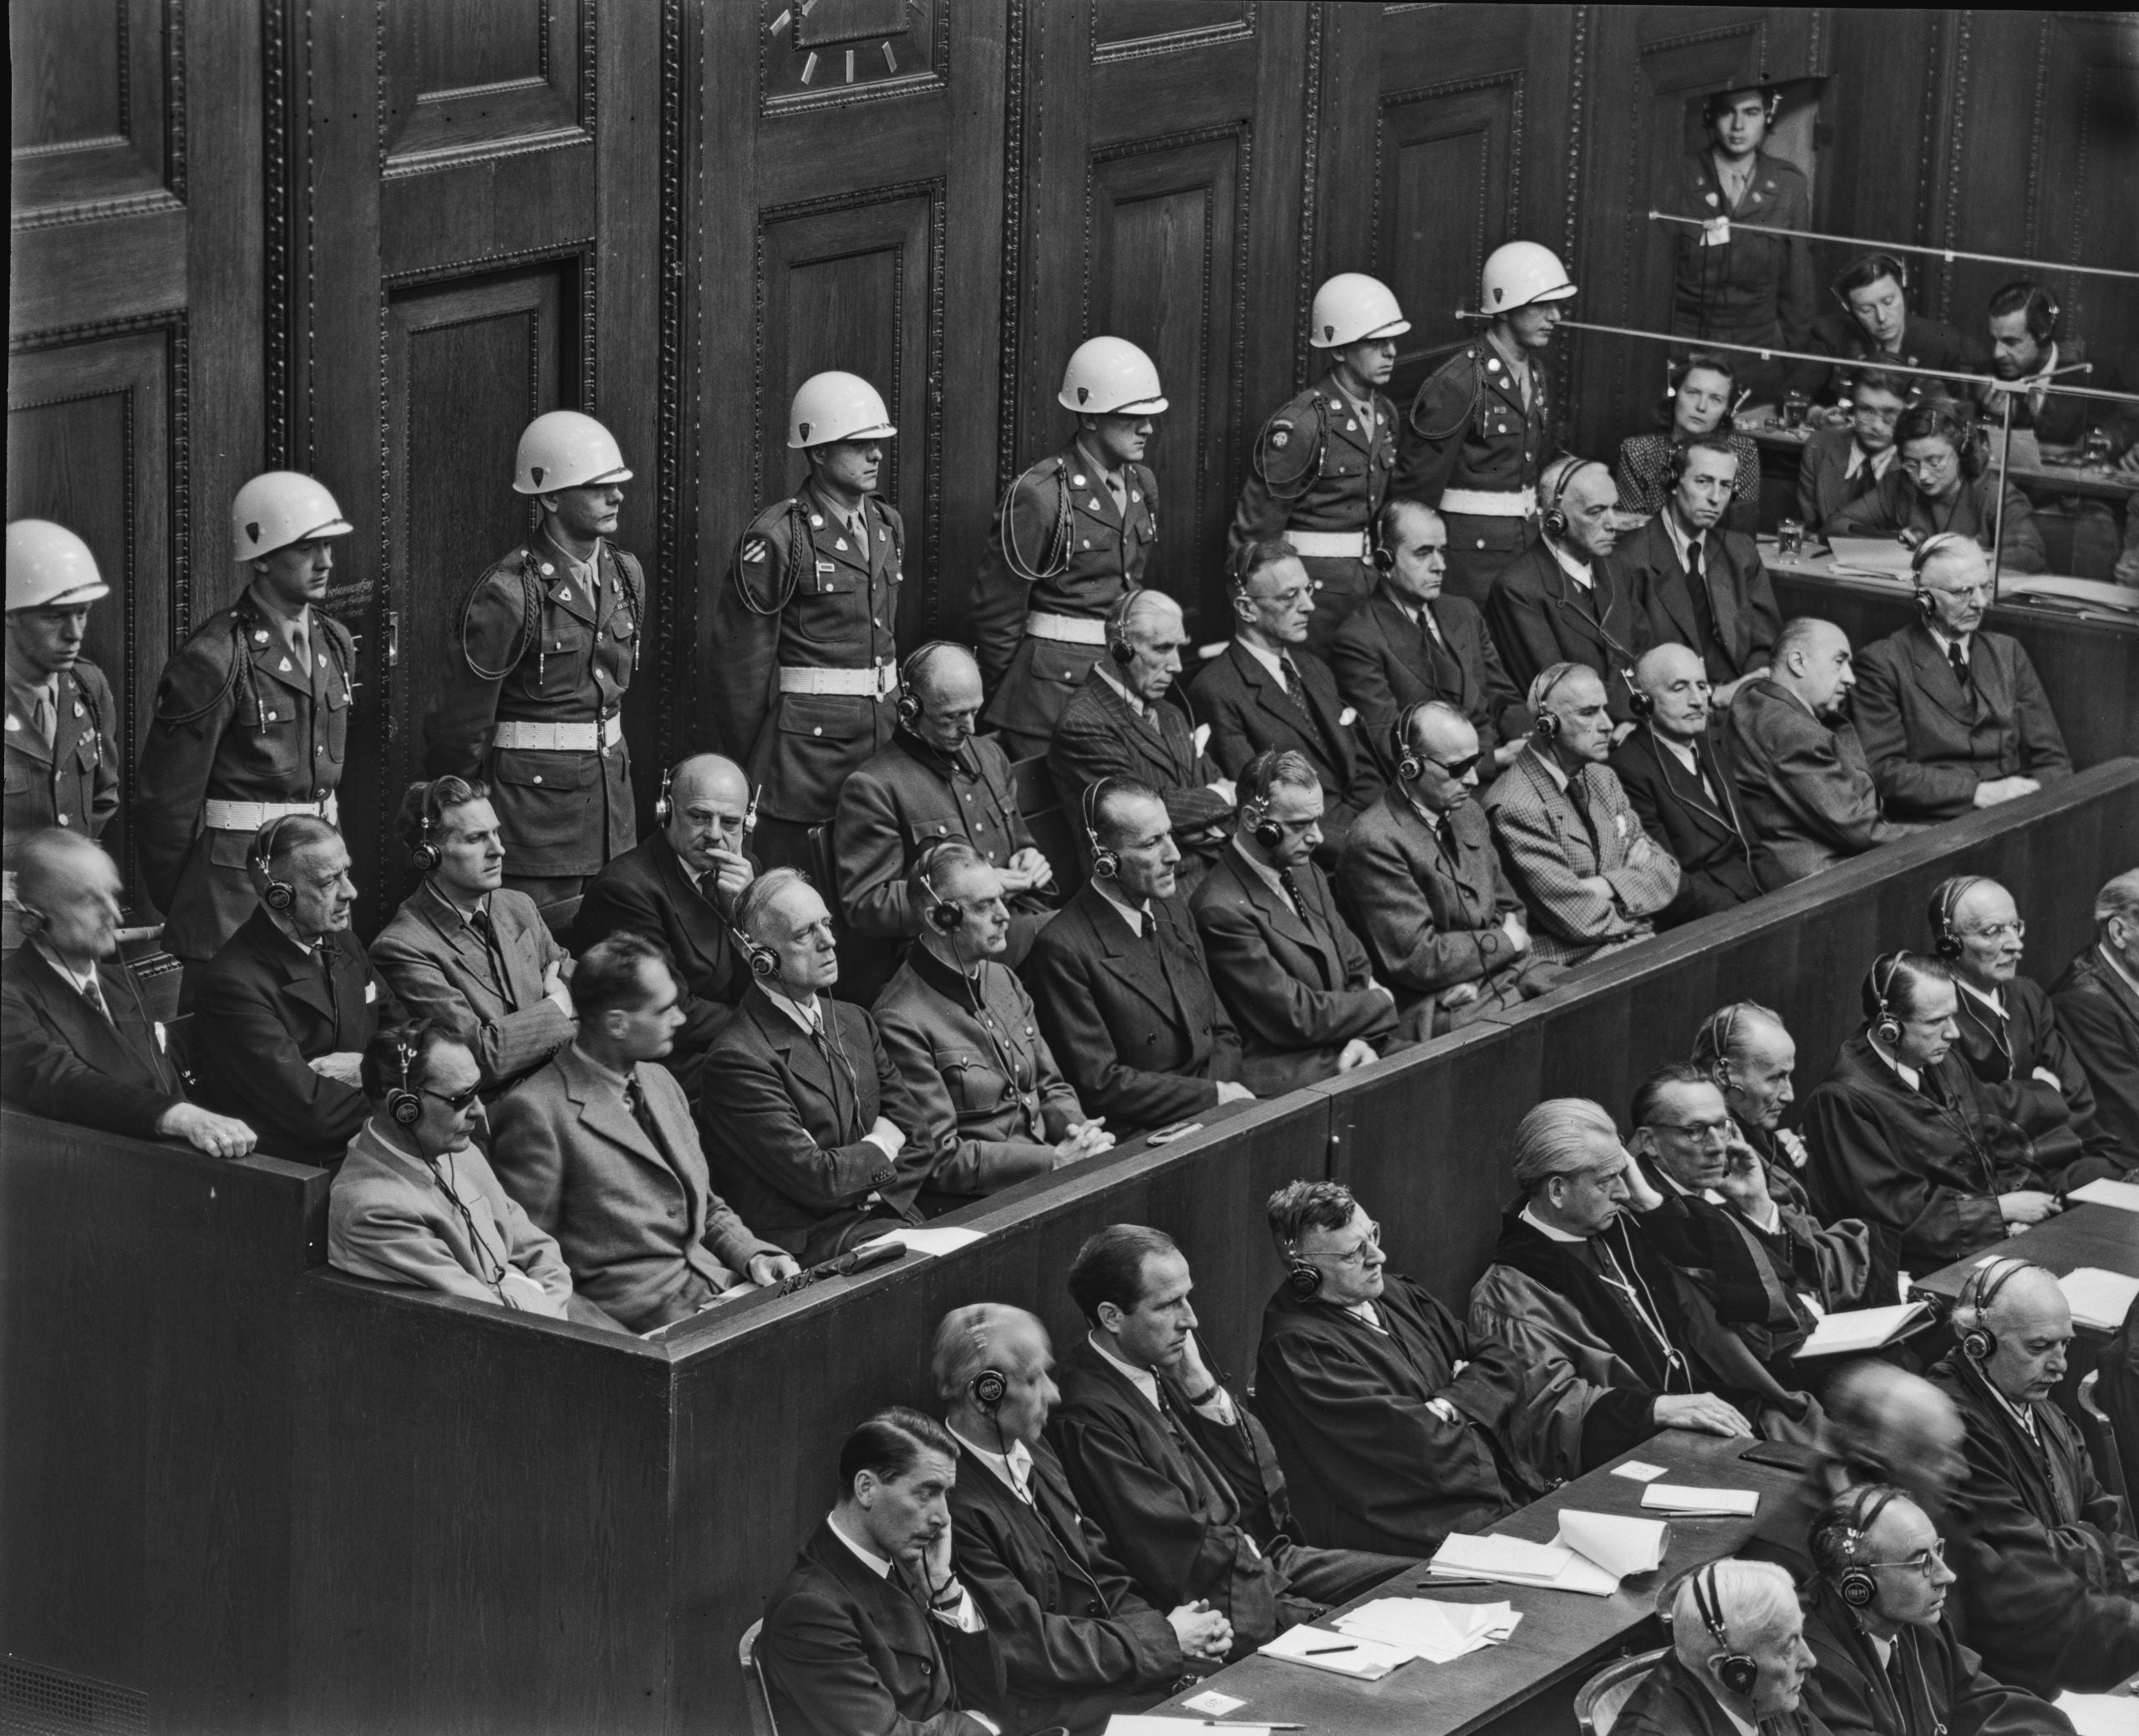 Philippe Sands' Diary: In Nuremberg, I'm reminded of how far we have come – and how much further some have to go